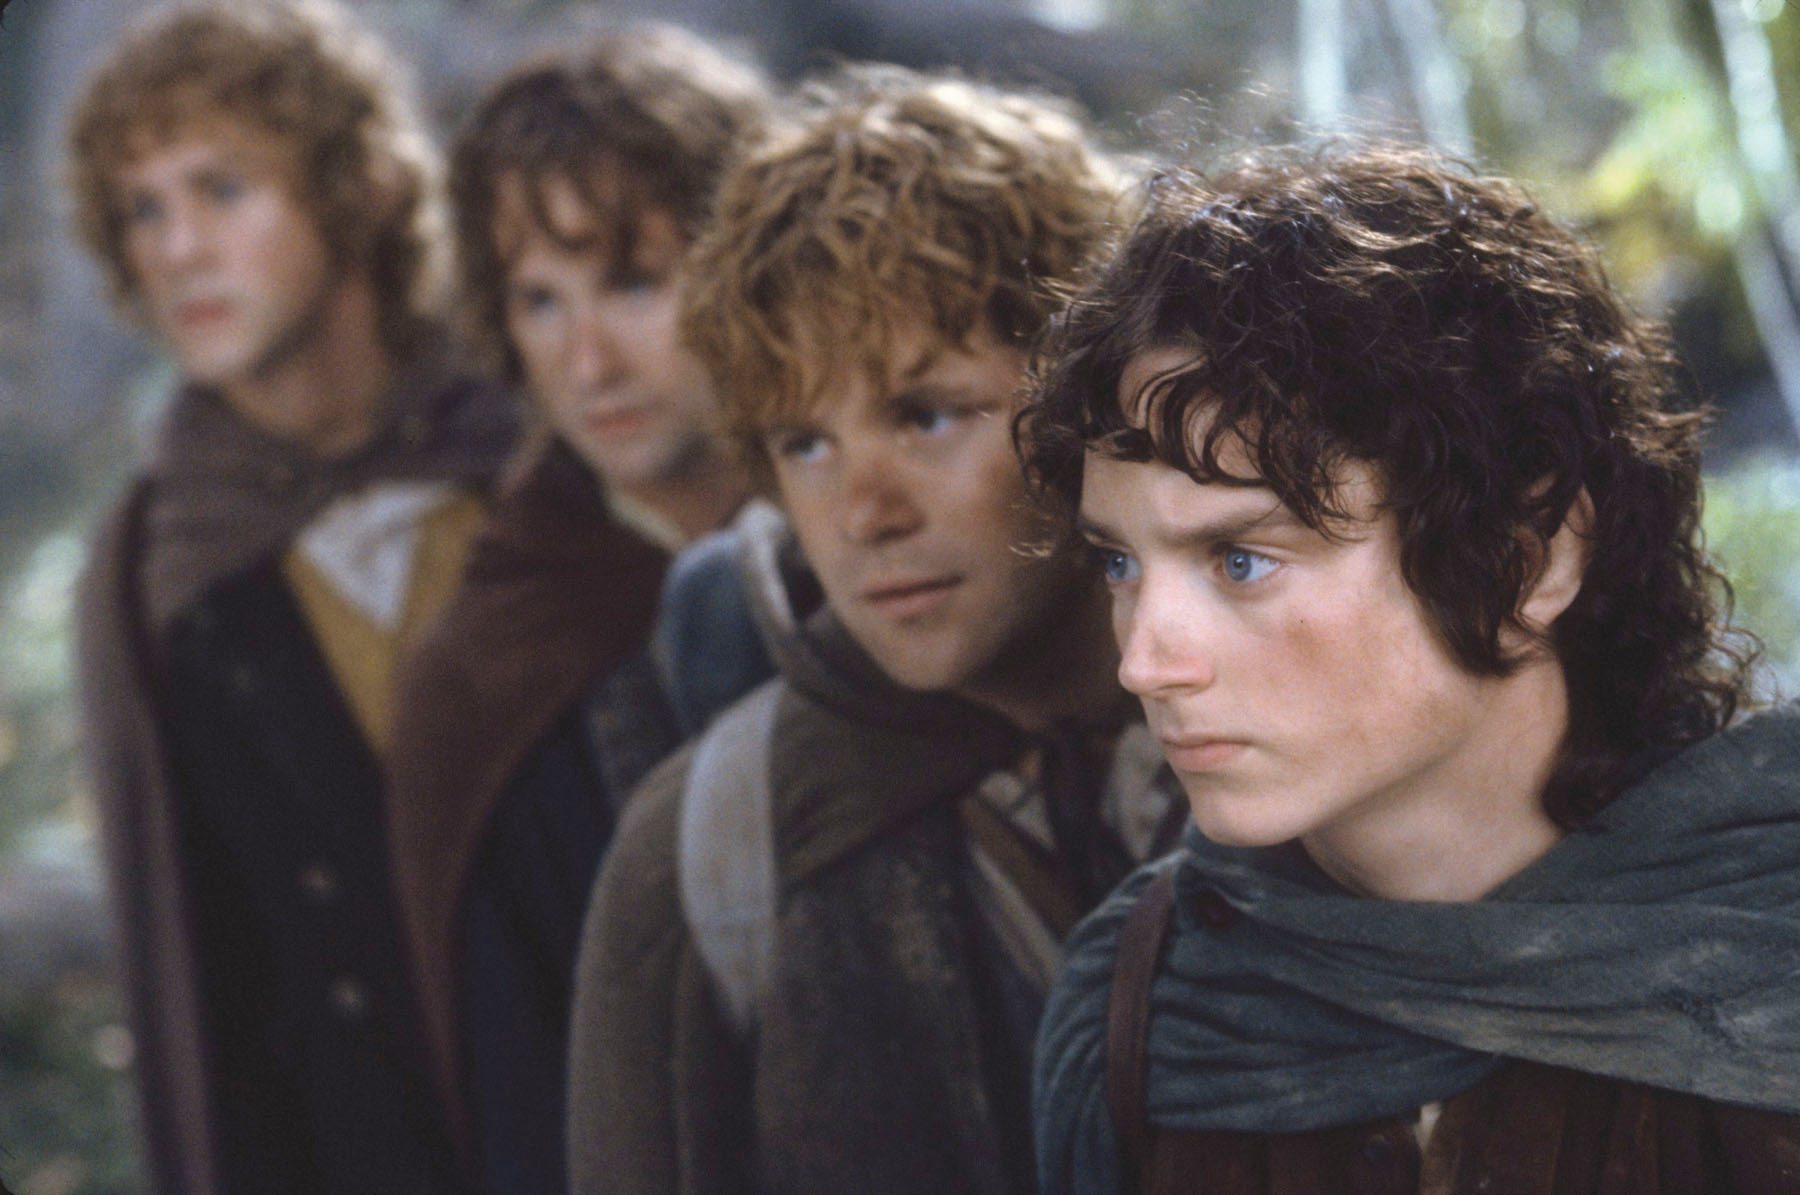 A scene from the film The Lord of the Rings featuring hobbits Frodo, Sam, Merry and Pippin